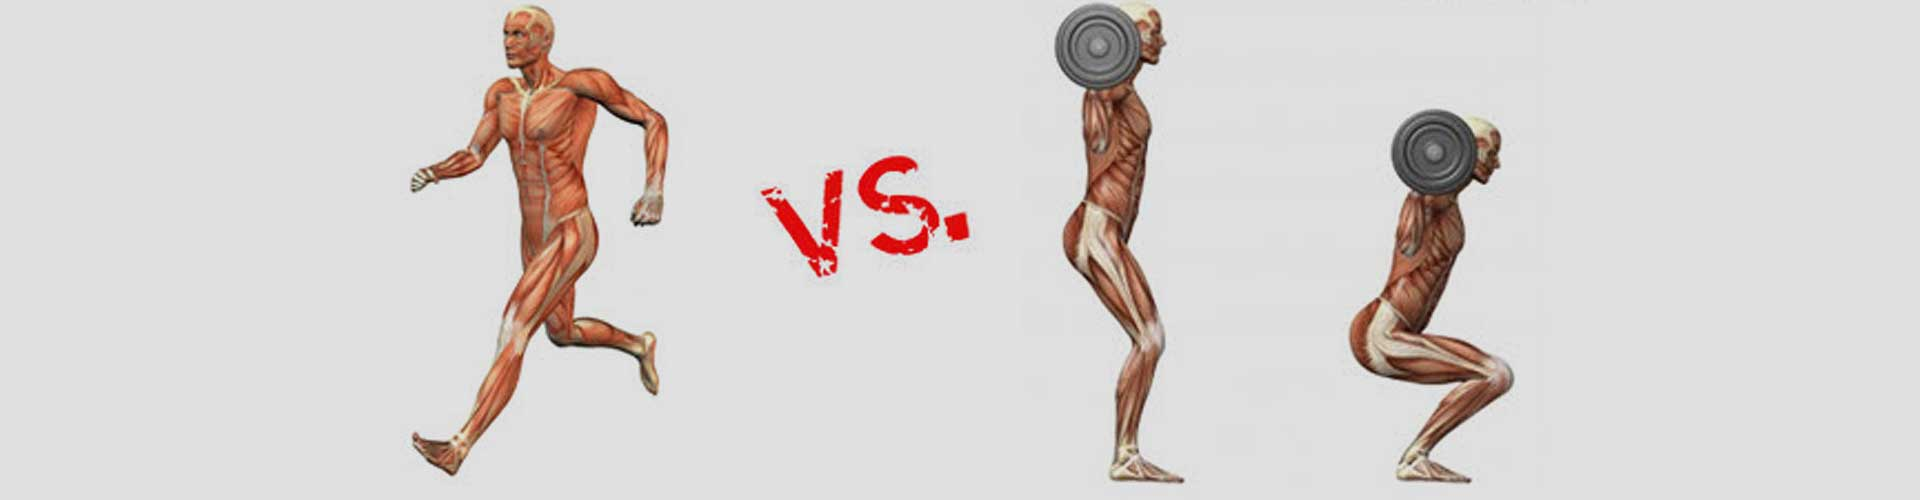 cardio-vs-weight-training-featured1.jpg